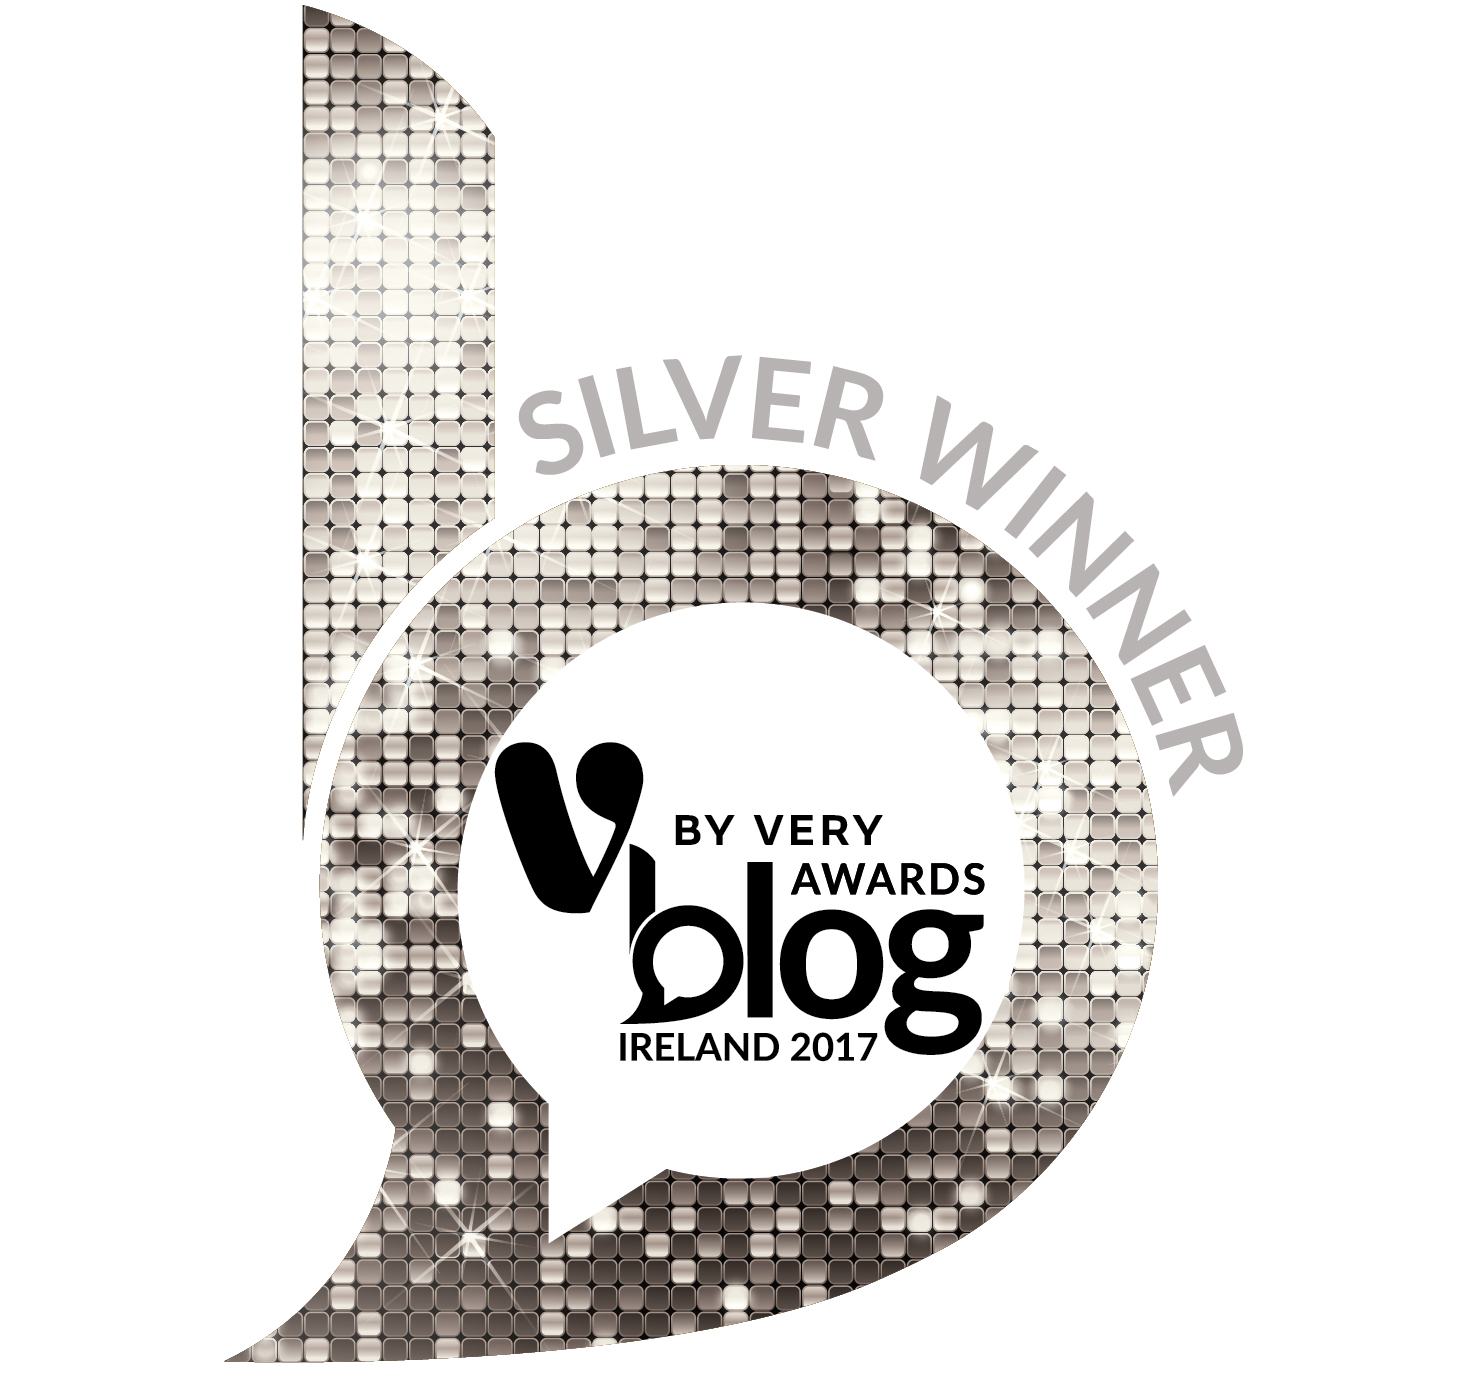 V By Very Blog Awards 2017-Silver